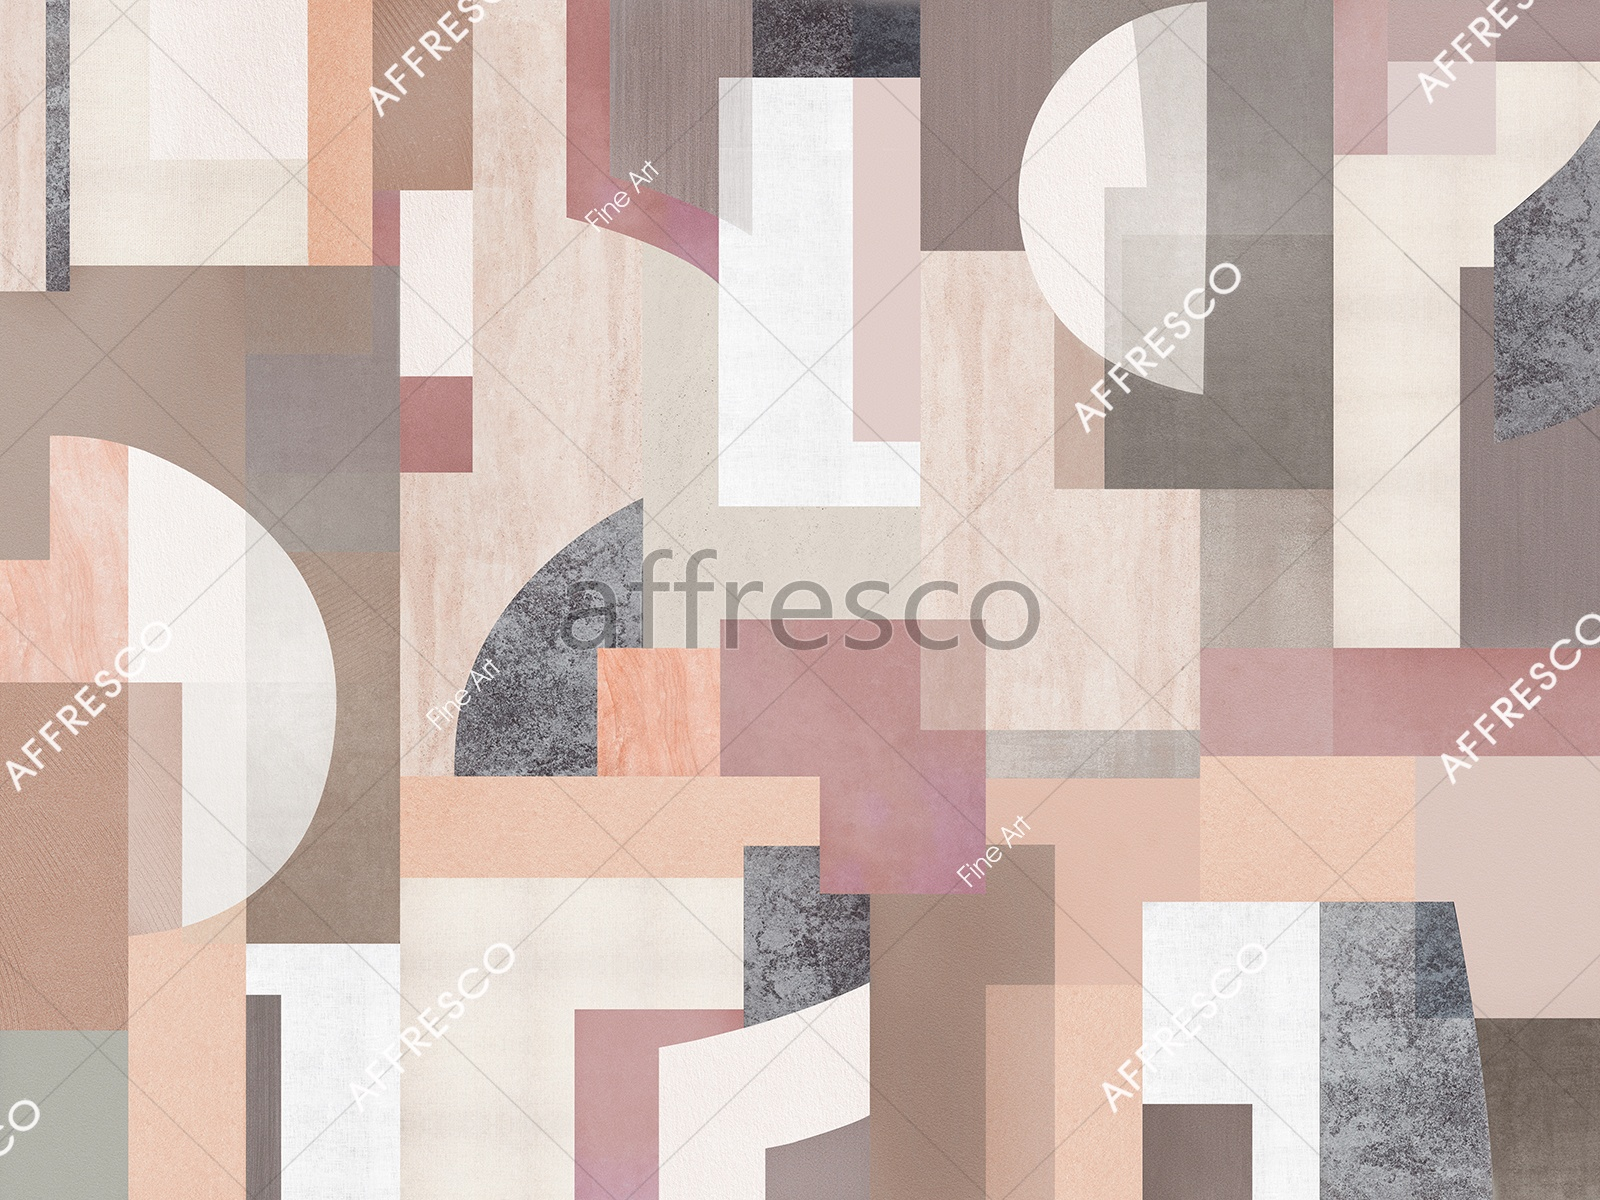 RE929-COL2 | Fine Art | Affresco Factory